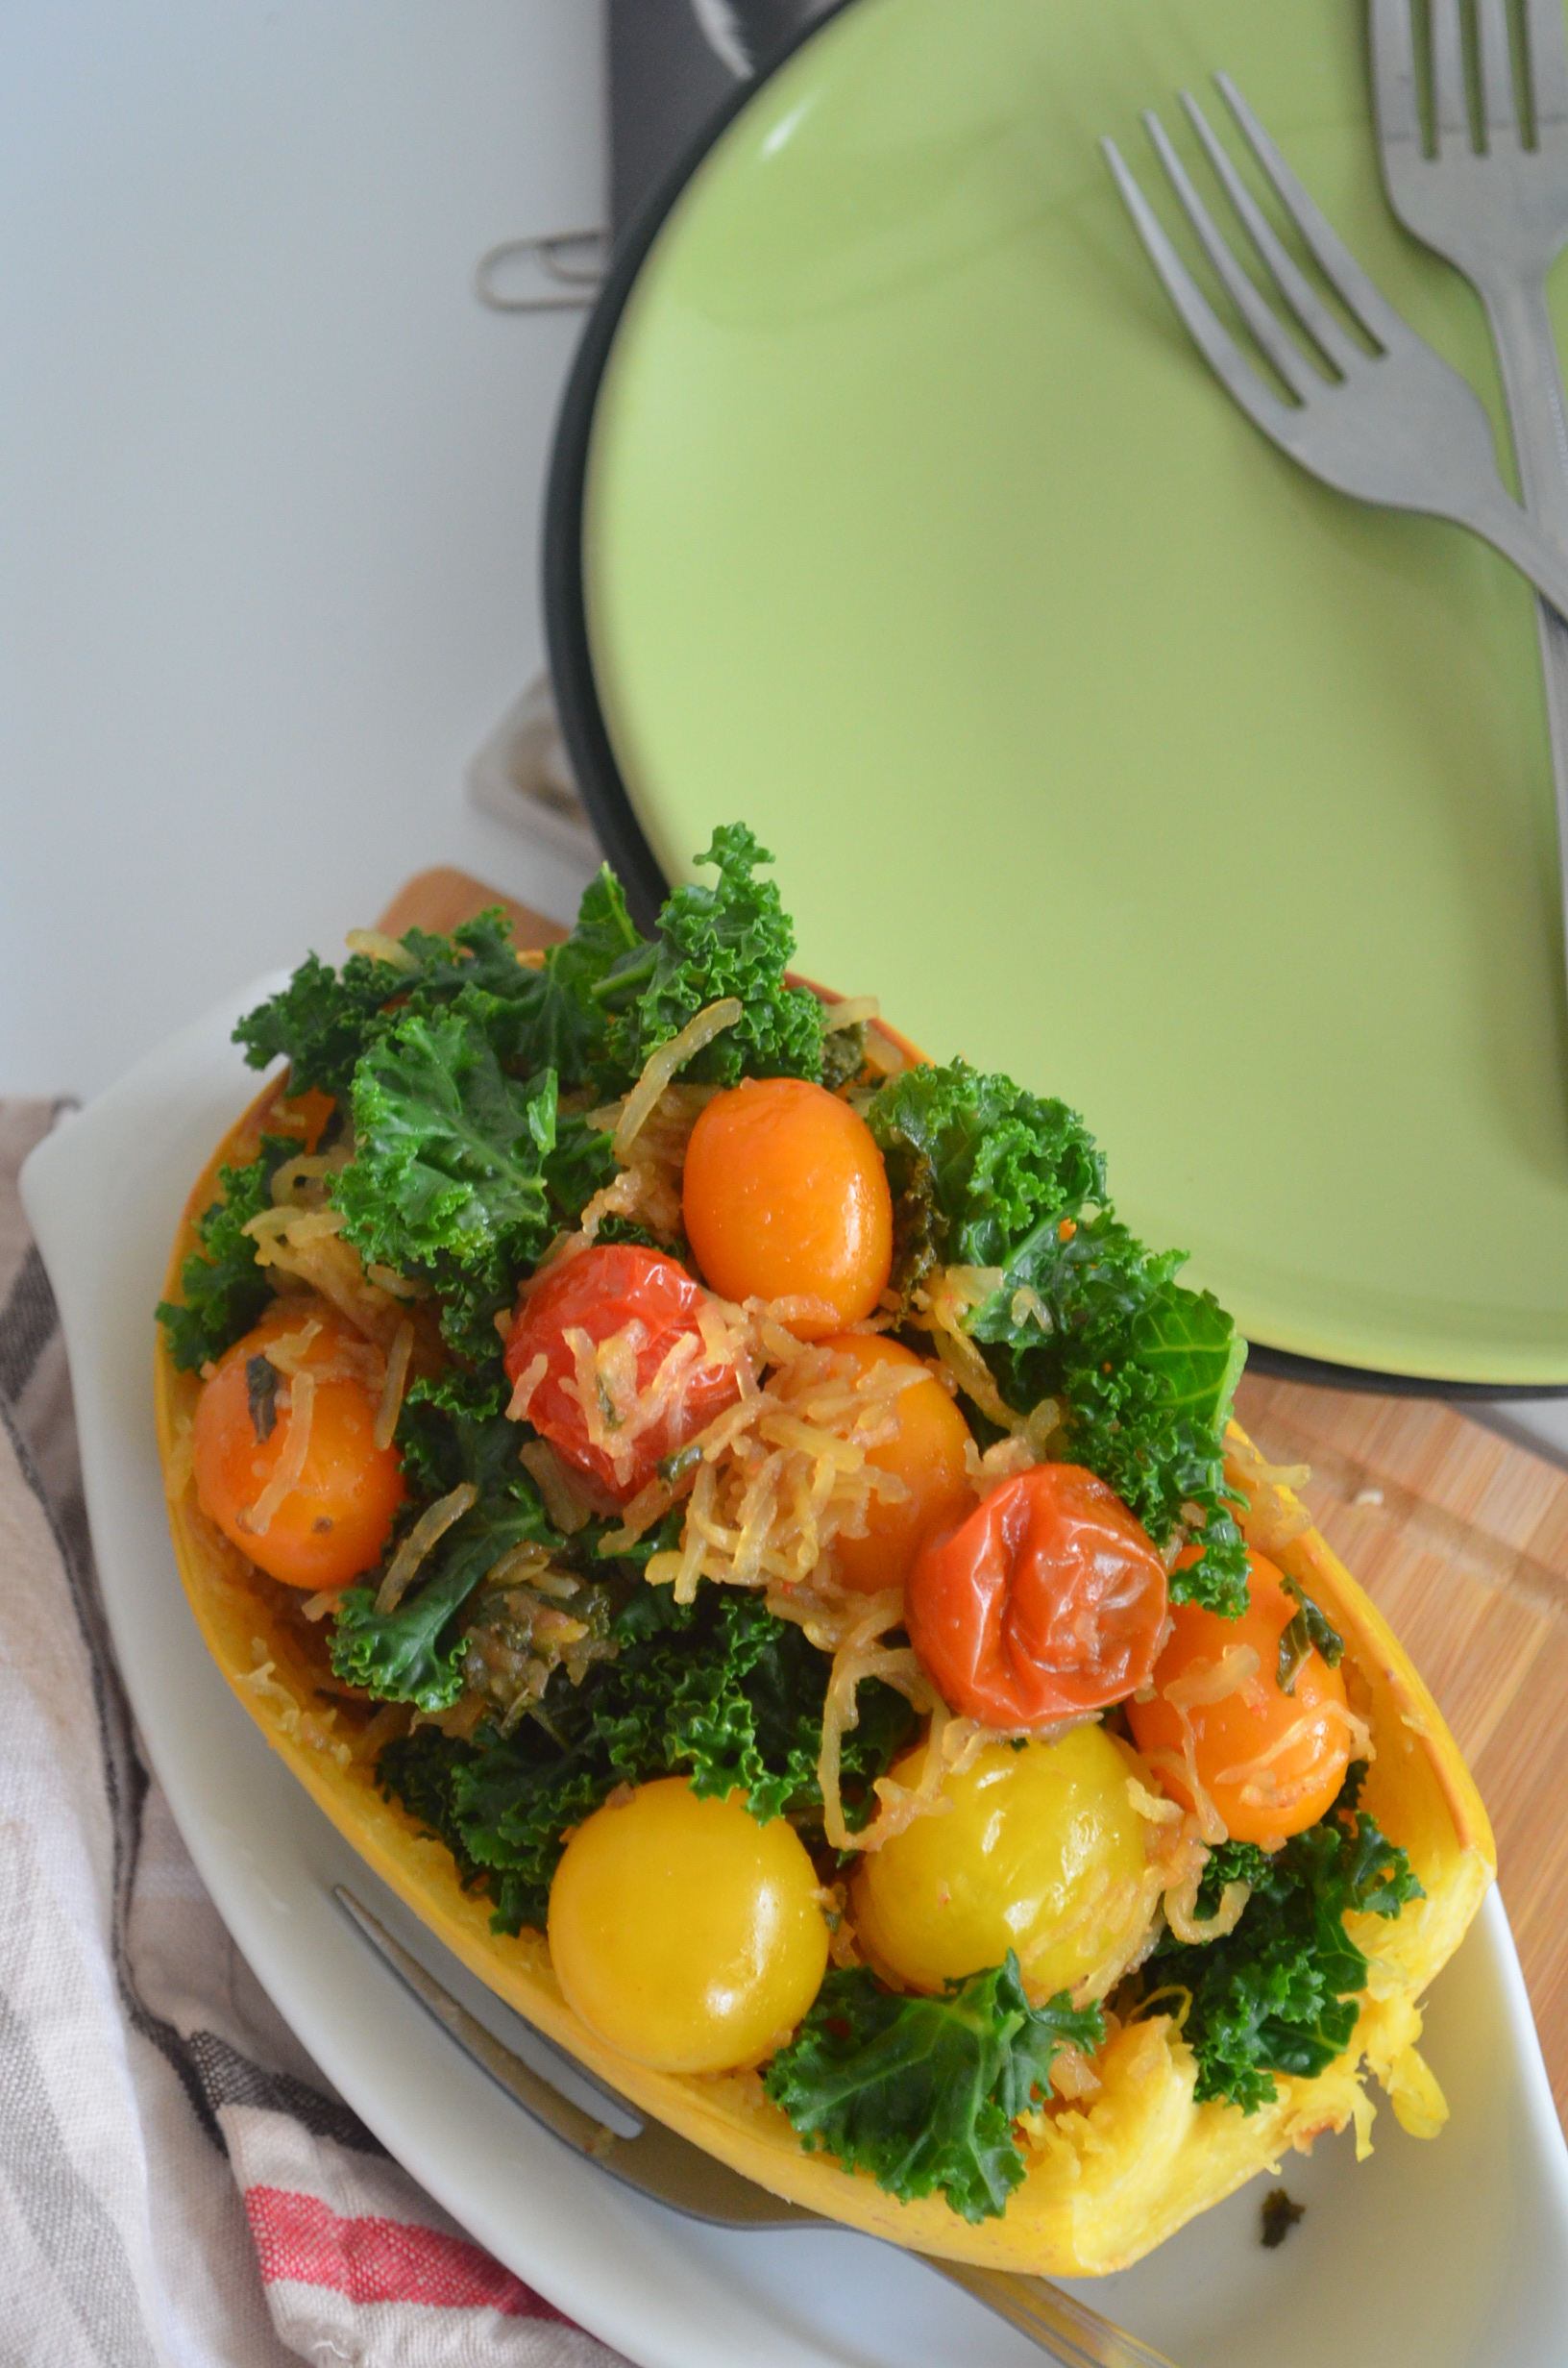 Spaghetti Squash with Kale and Tomato Recipe